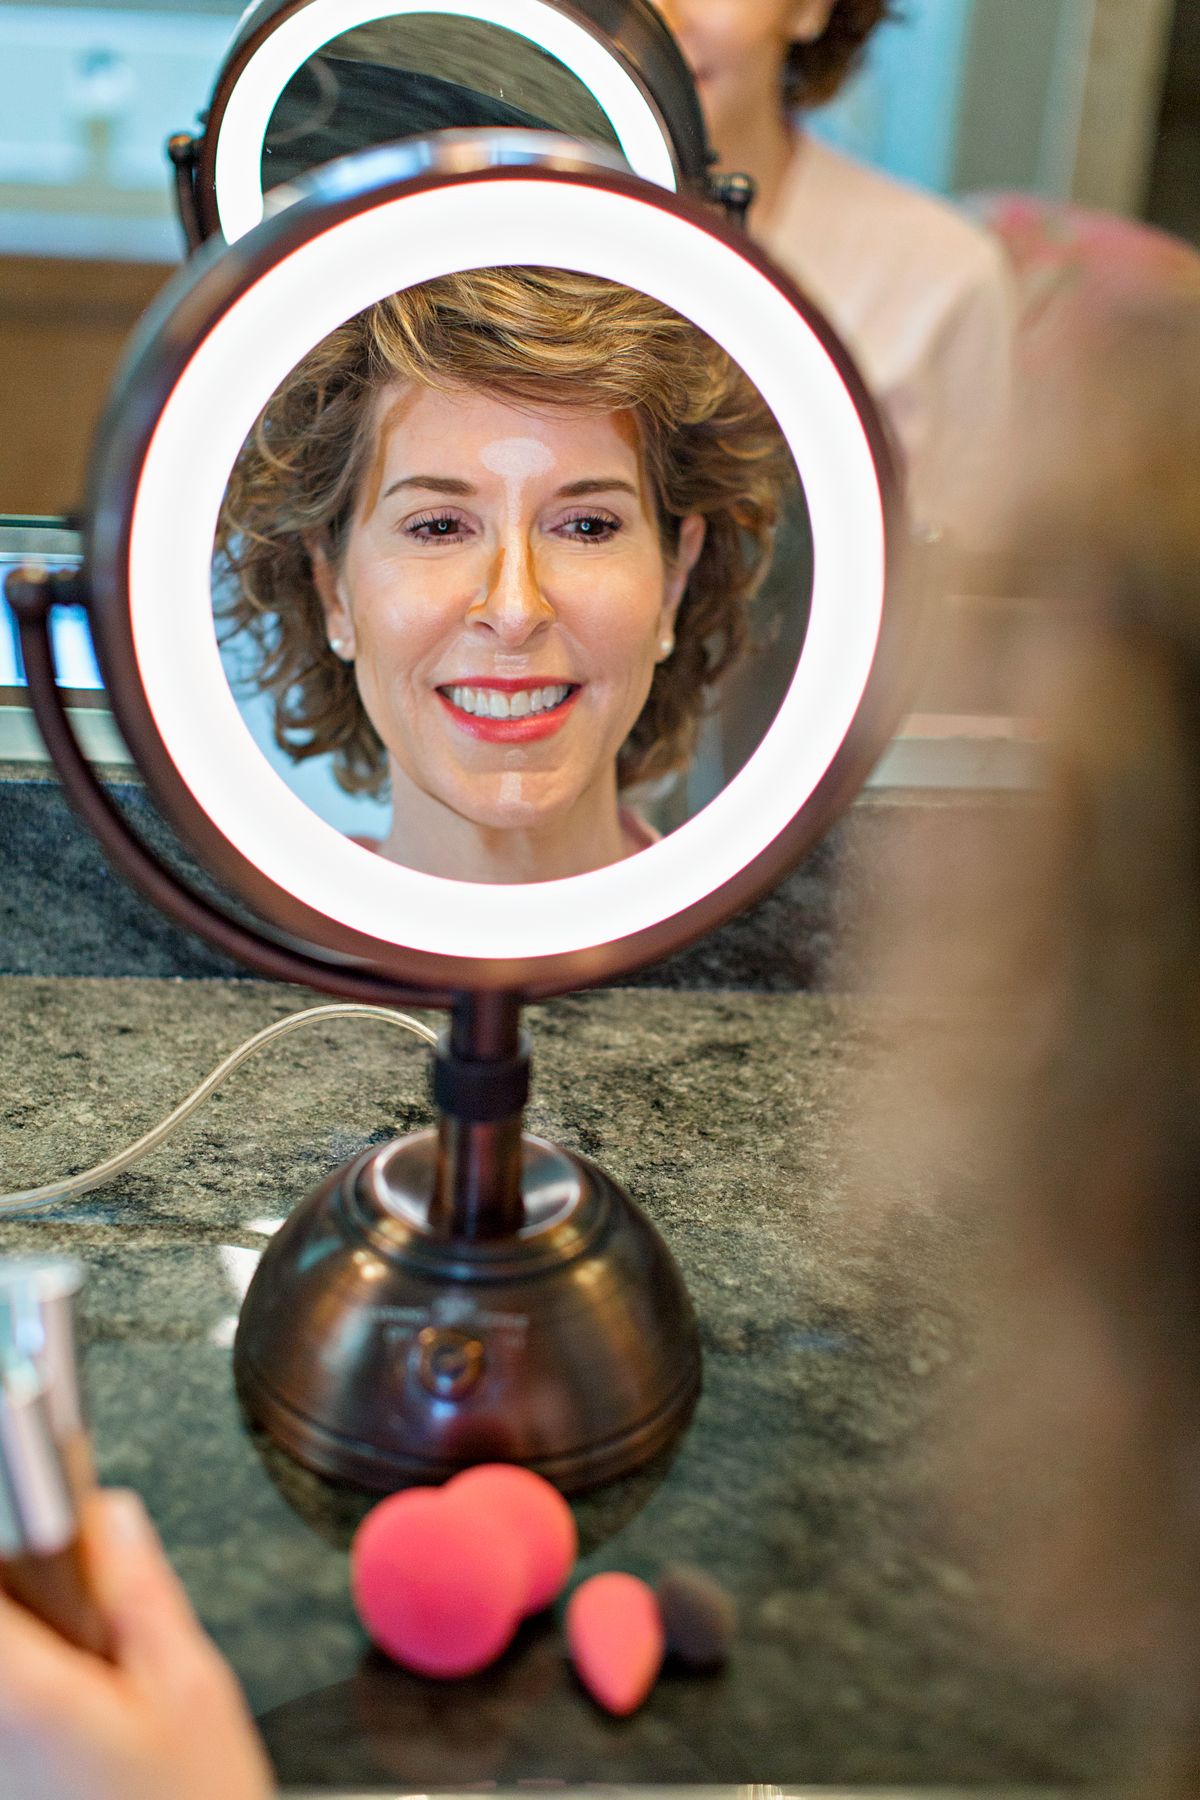 Contouring, how to contour, contouring 101, basics of contouring, empty nest, empty nester, empty nesters, self care for empty nesters, makeup over 50, contouring for over 50, contouring and highlighting, contouring makeup, contouring face, contouring stick, best contouring tools, contouring nose, contouring definition, contouring a round face, contouring a square face, contouring a thin face, contouring a narrow face, contouring a long face, contouring a double chin, beauty over 50, over 50 beauty blogger, over 50 beauty blog, midlife beauty, over 50 beauty, over 50 makeup